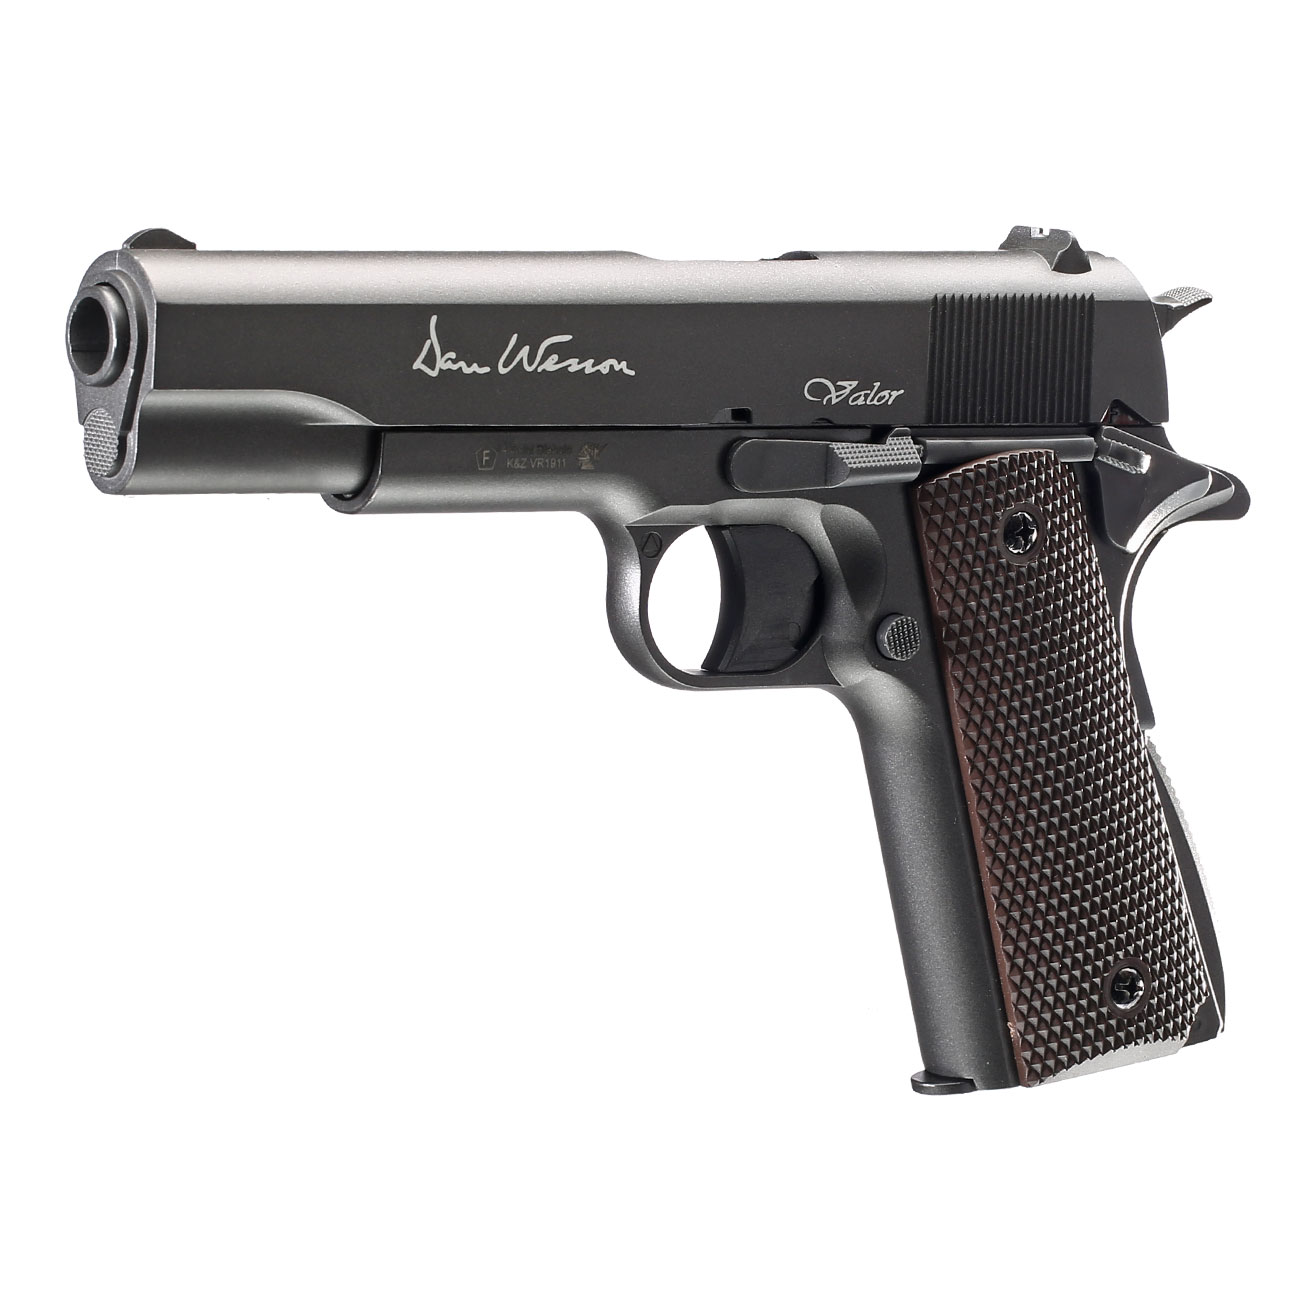 Dan Wesson Valor 1911 CO2-Luftpistole Kal. 4,5mm Diabolo Non-Blowback 1